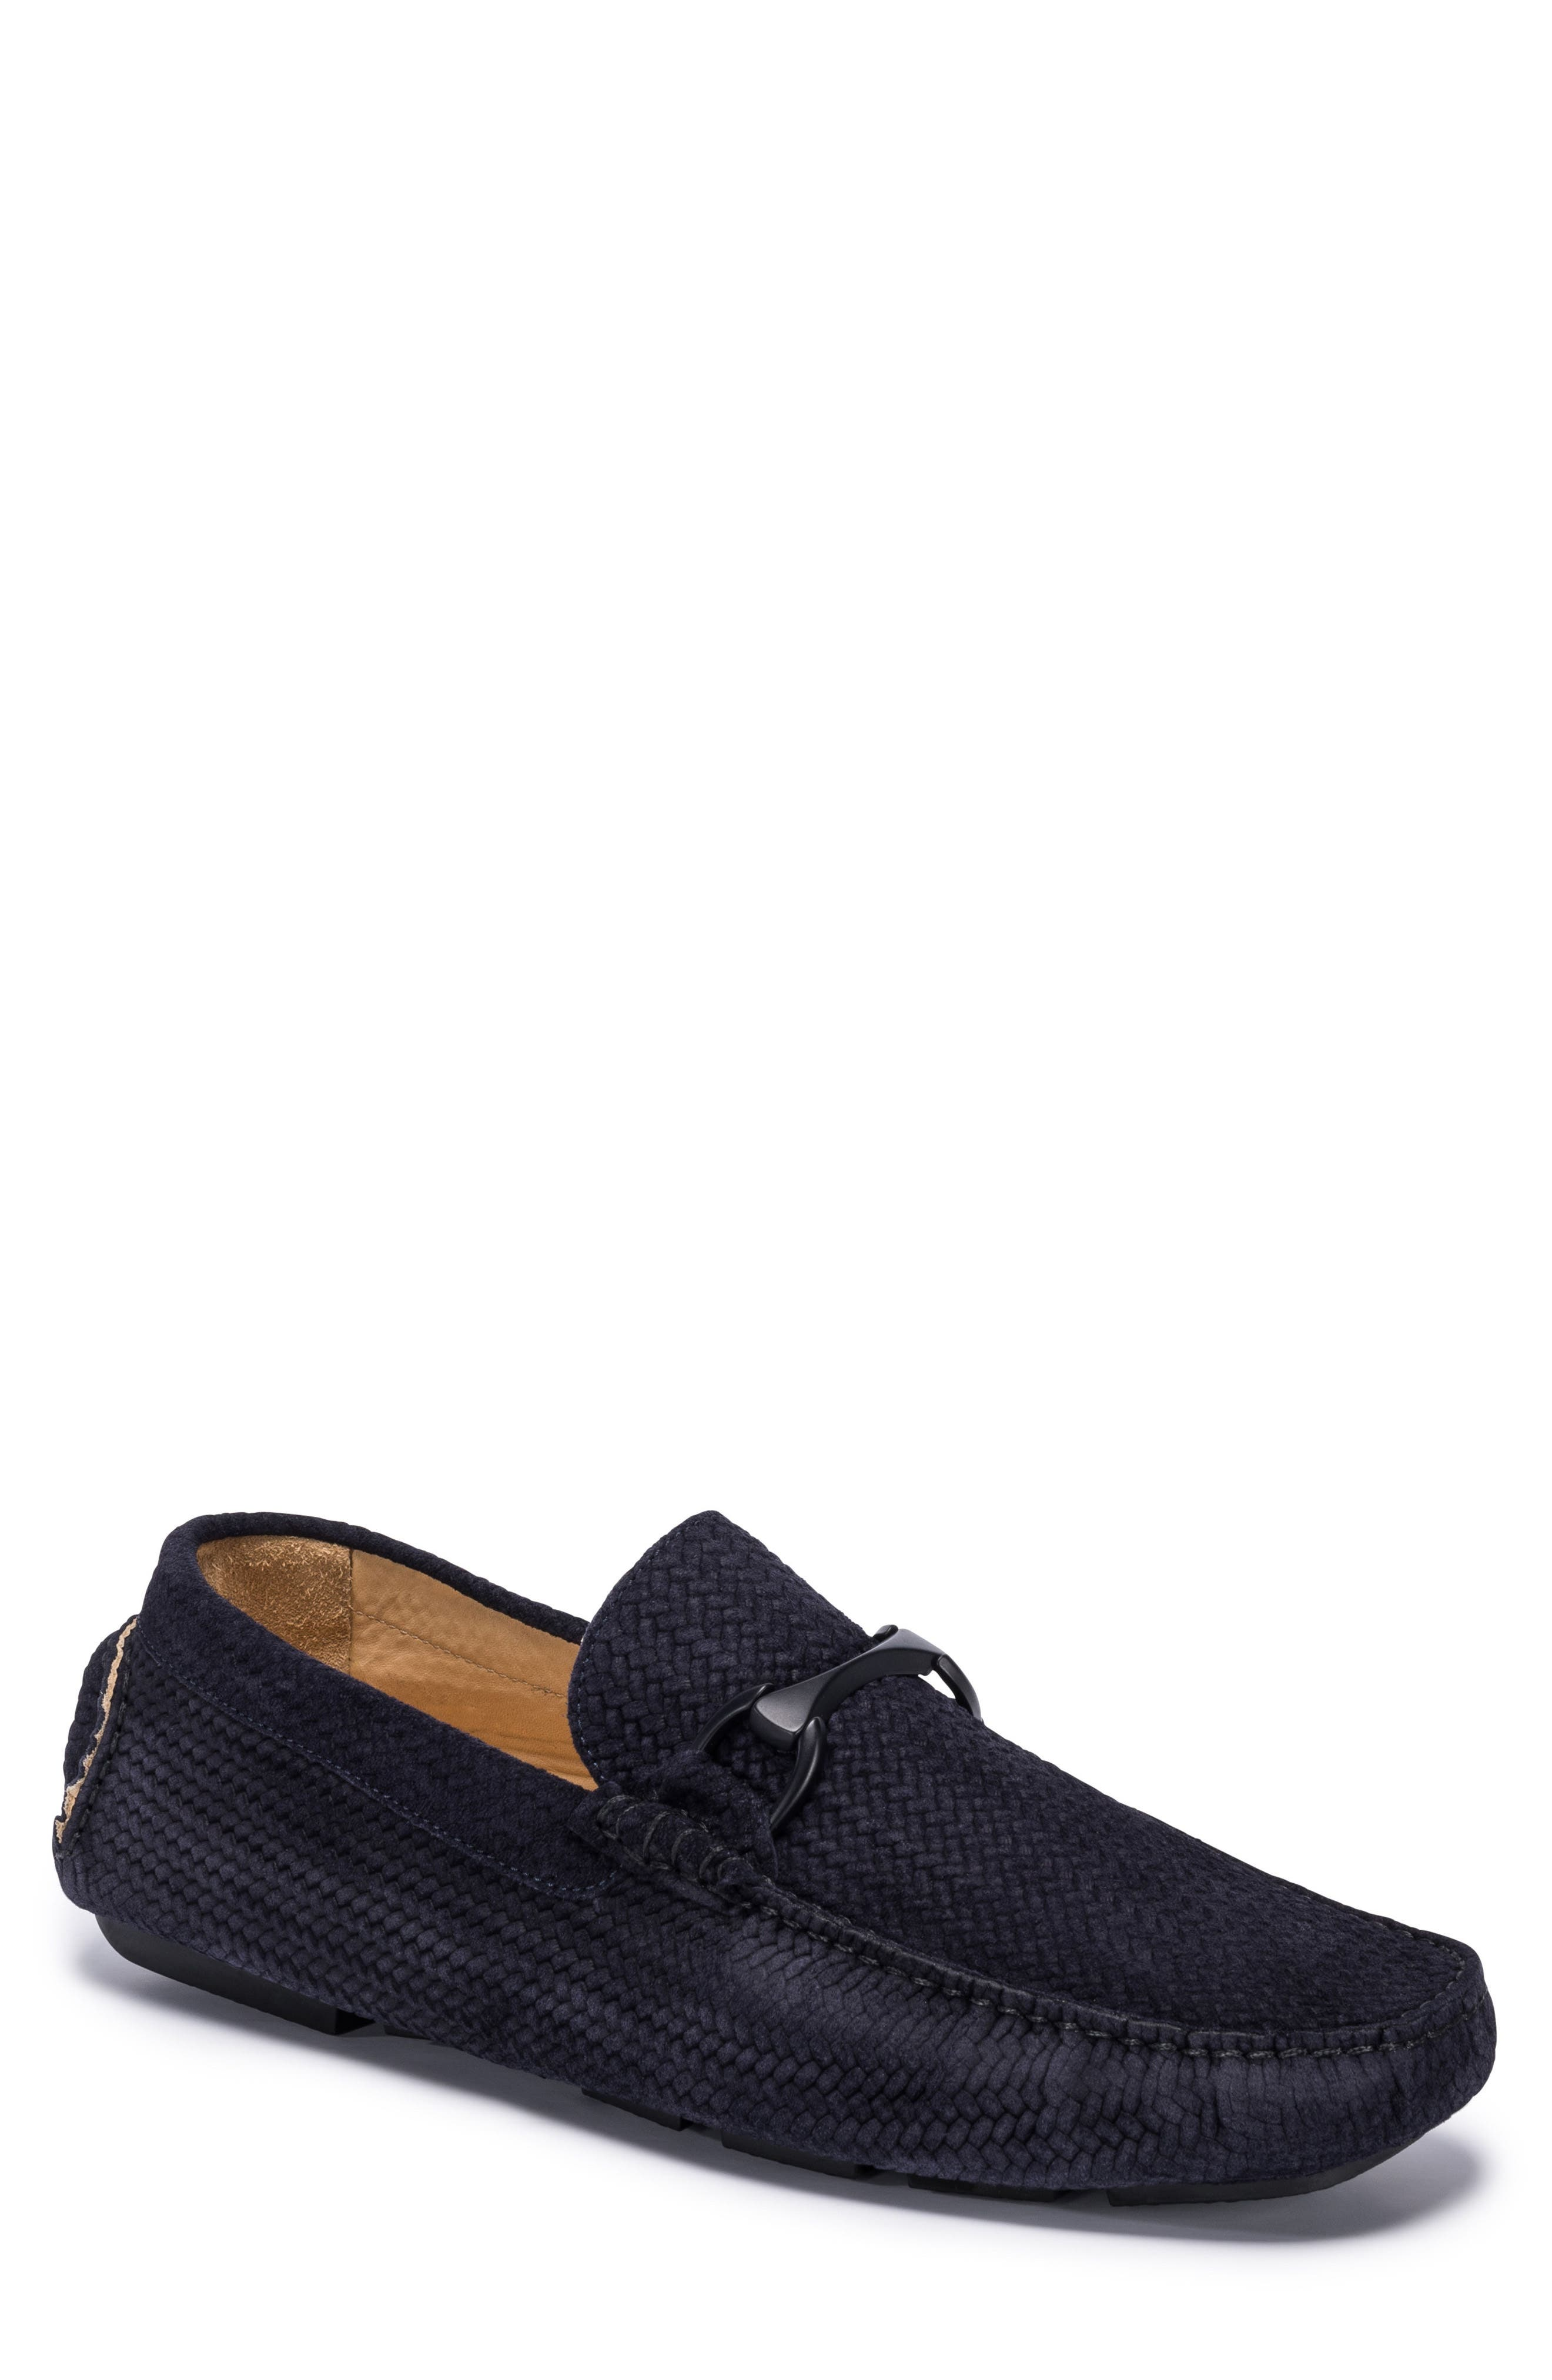 Amalfi Woven Bit Driving Loafer,                         Main,                         color, 429